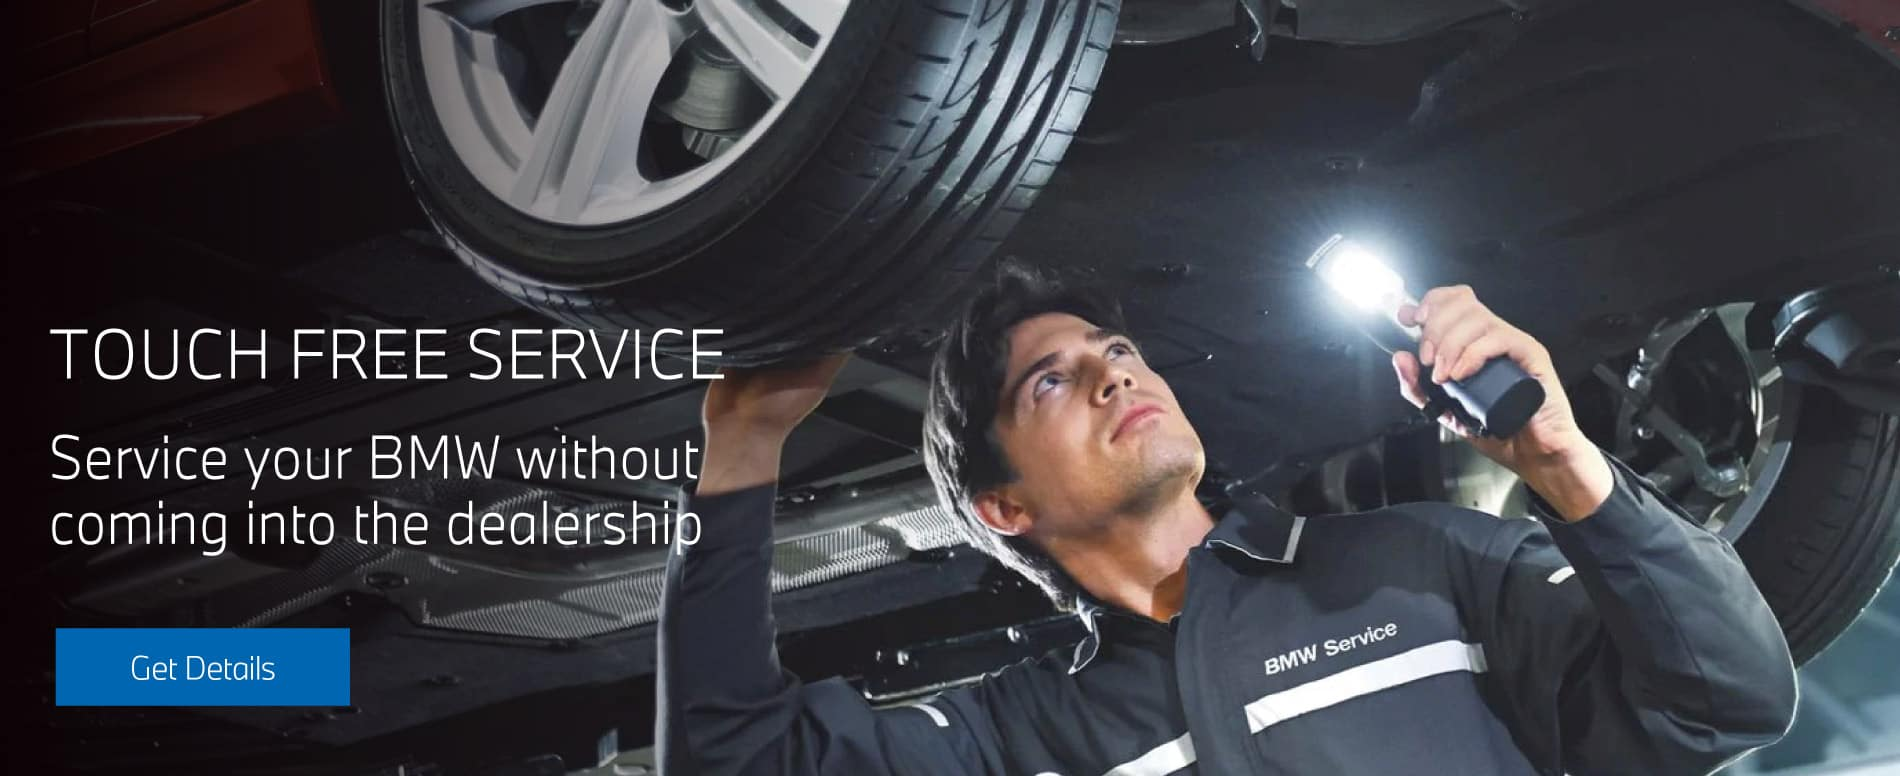 Touch Free Service Service Your BMW without coming into the dealership